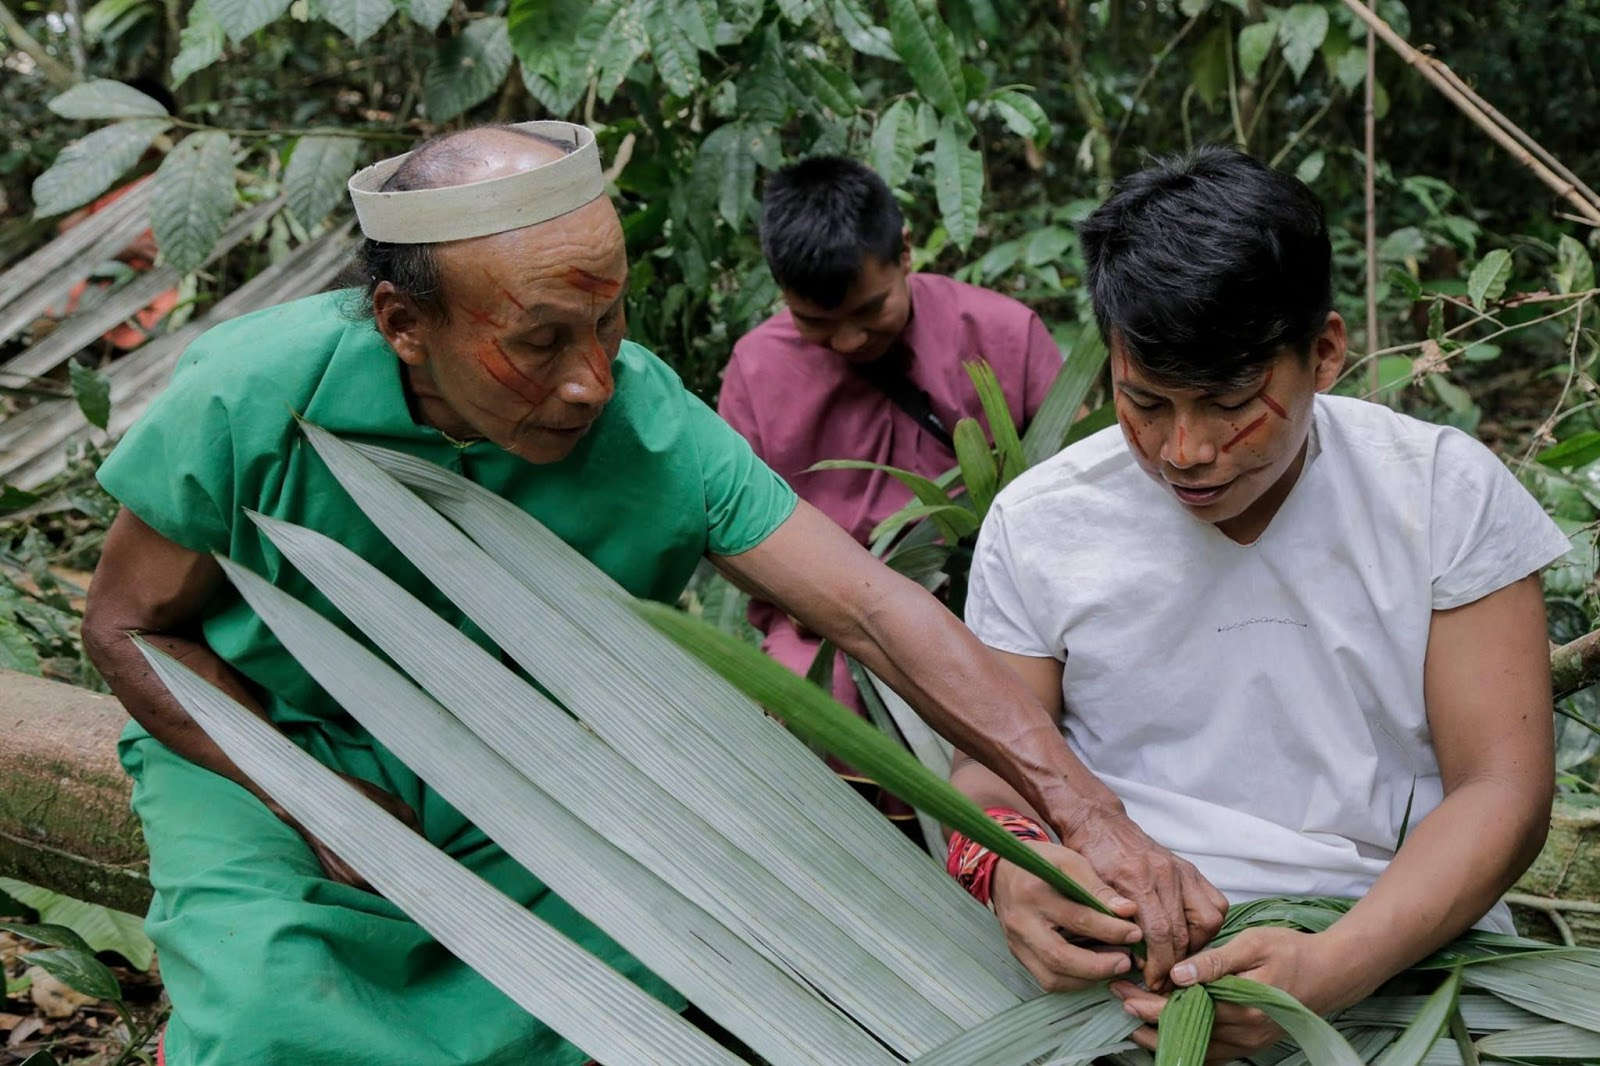 Jimmy and Ribaldo Piaguaje learning about plants from an elder.